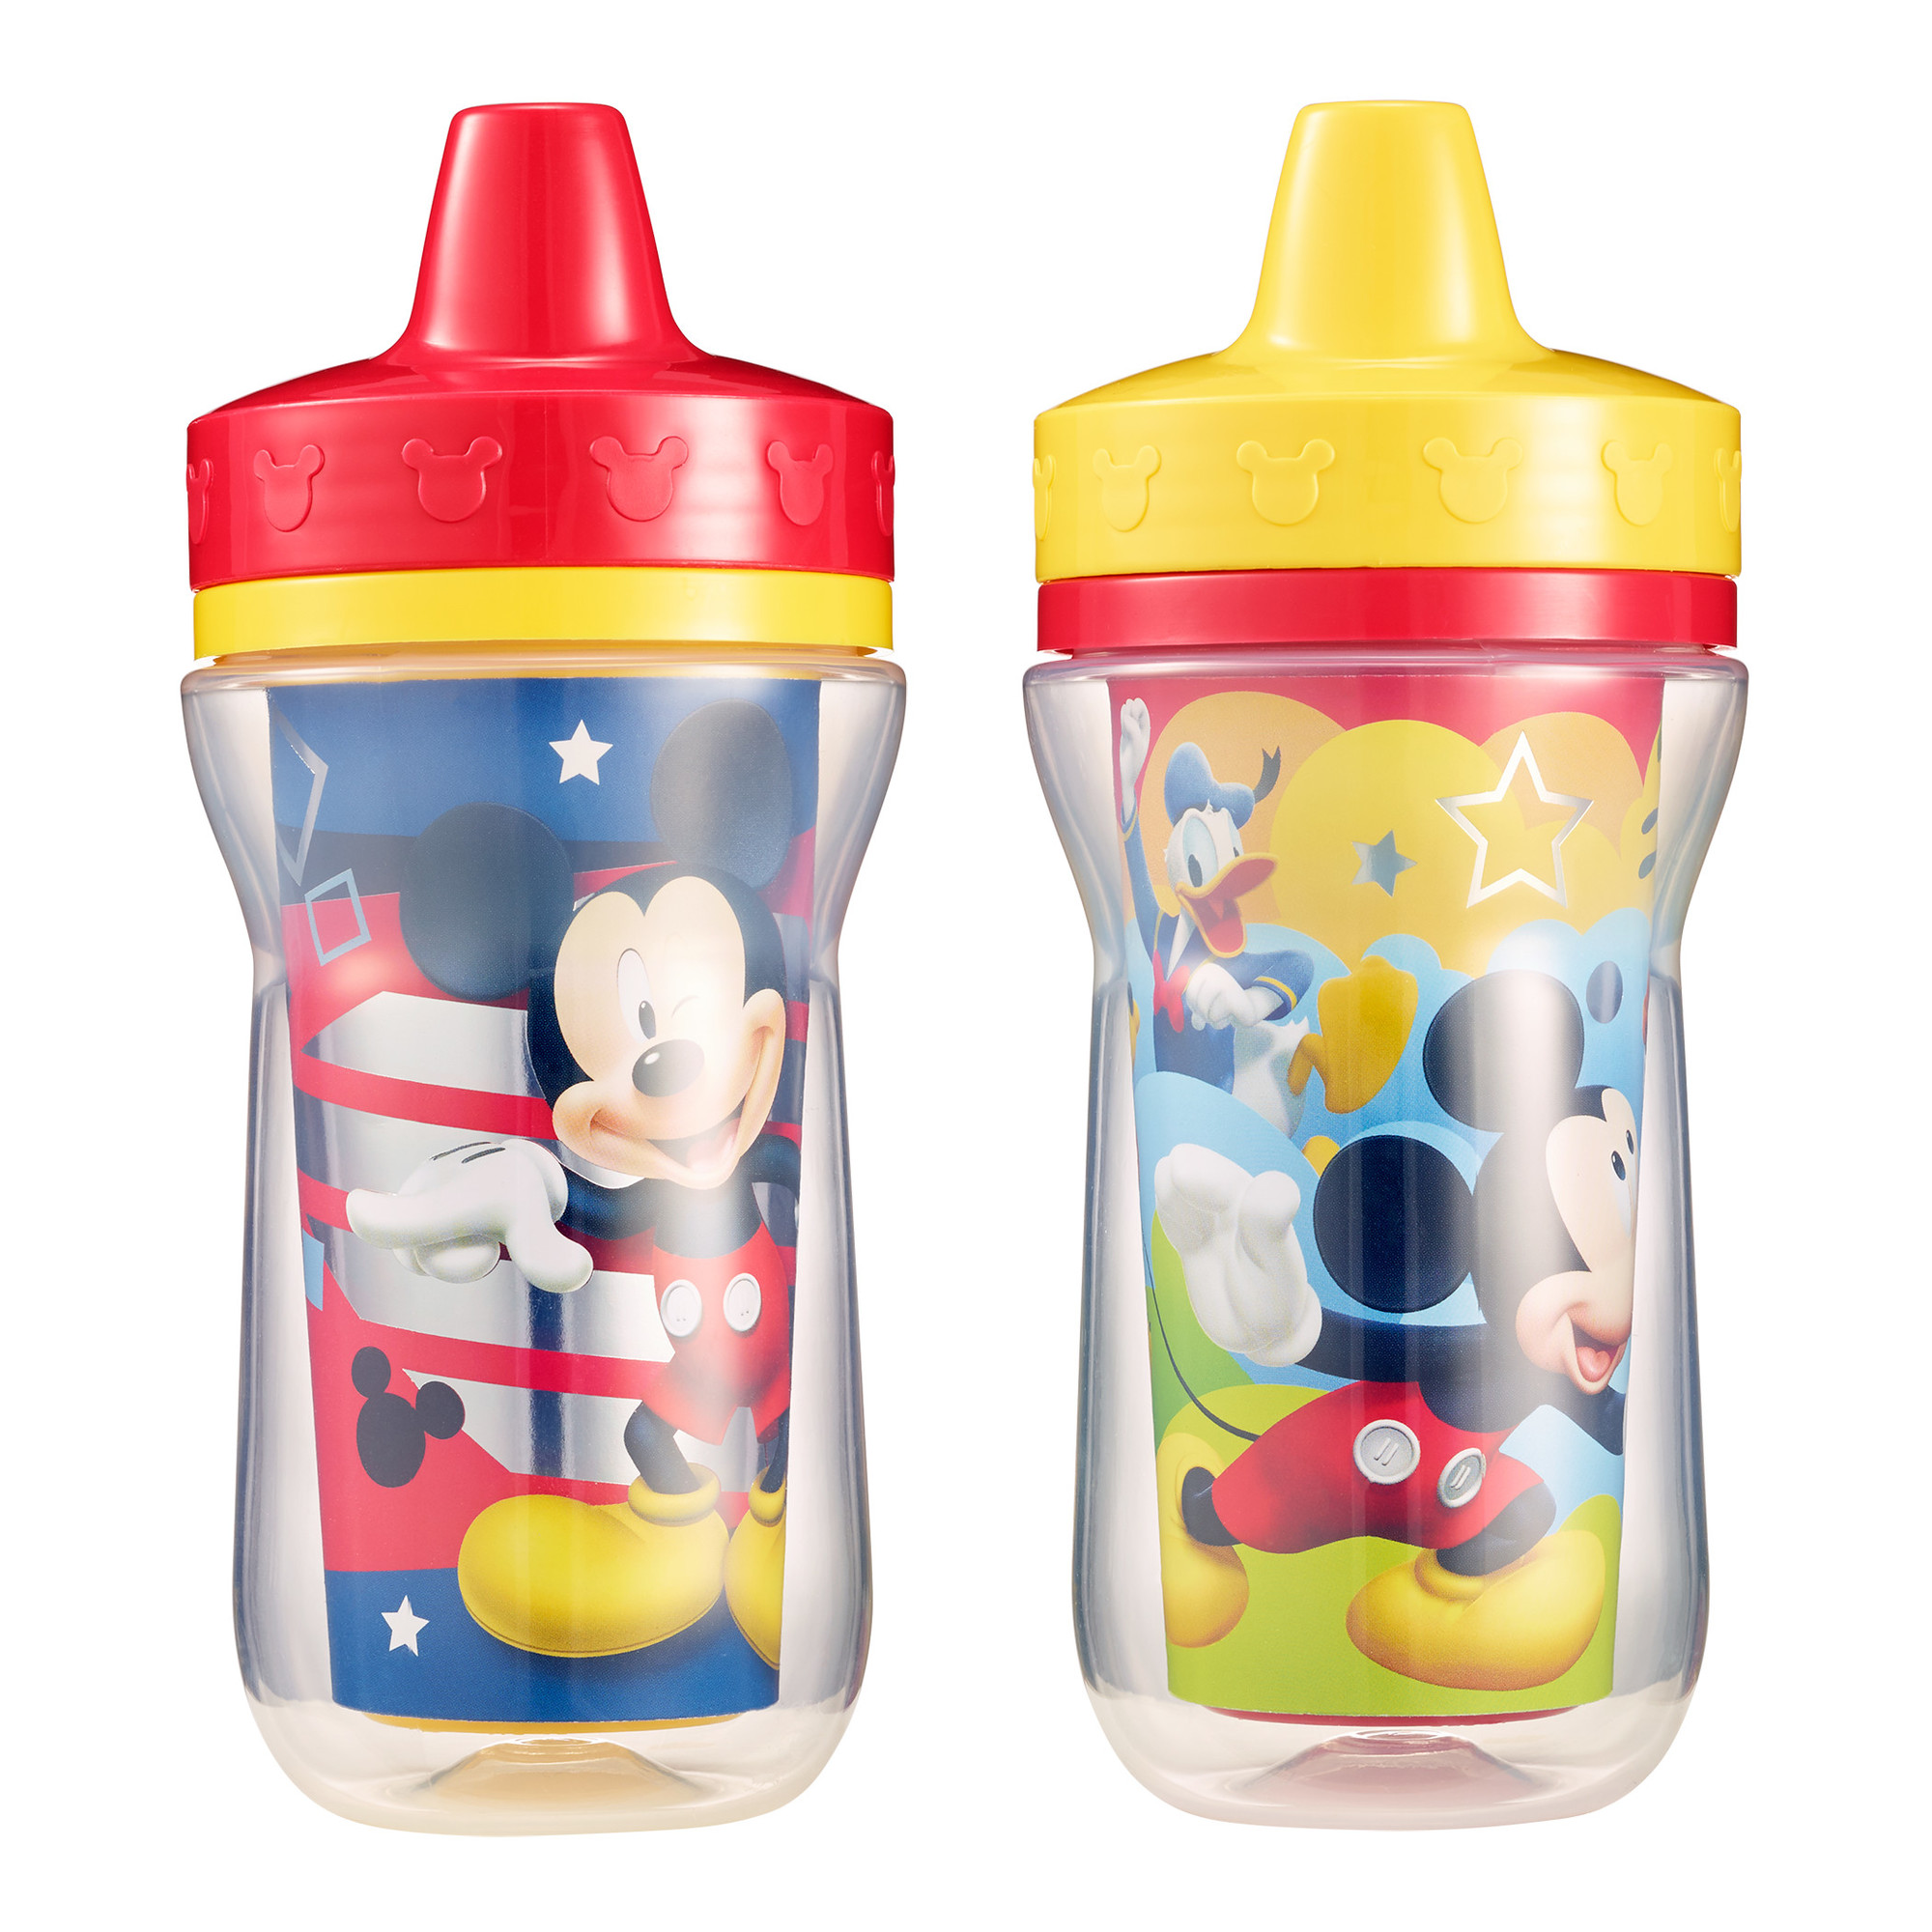 Disney Mickey Mouse Insulated Hard Spout Sippy Cups, 9 Oz, 2 Pk